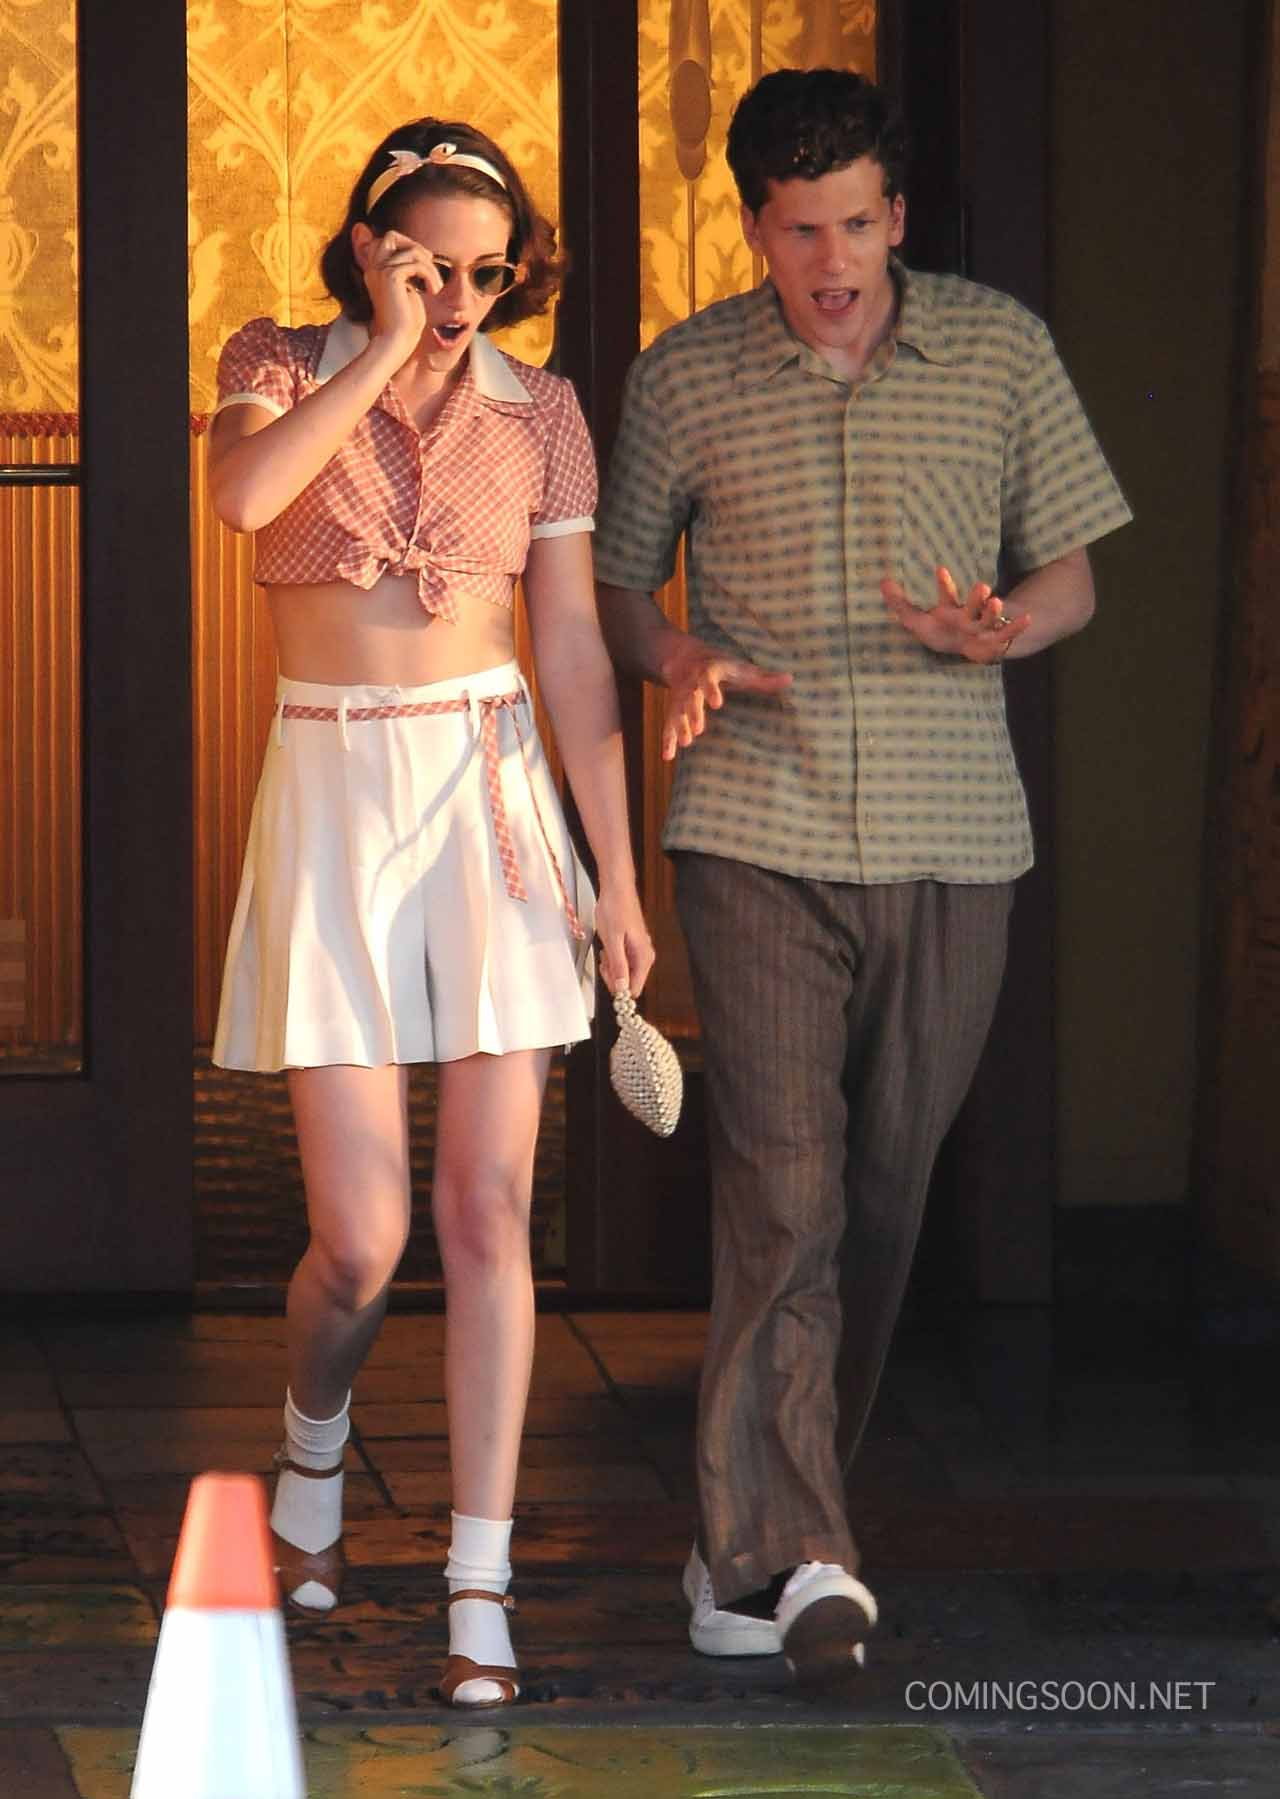 Kristen Stewart and Jesse Eisenberg on Woody Allen Set